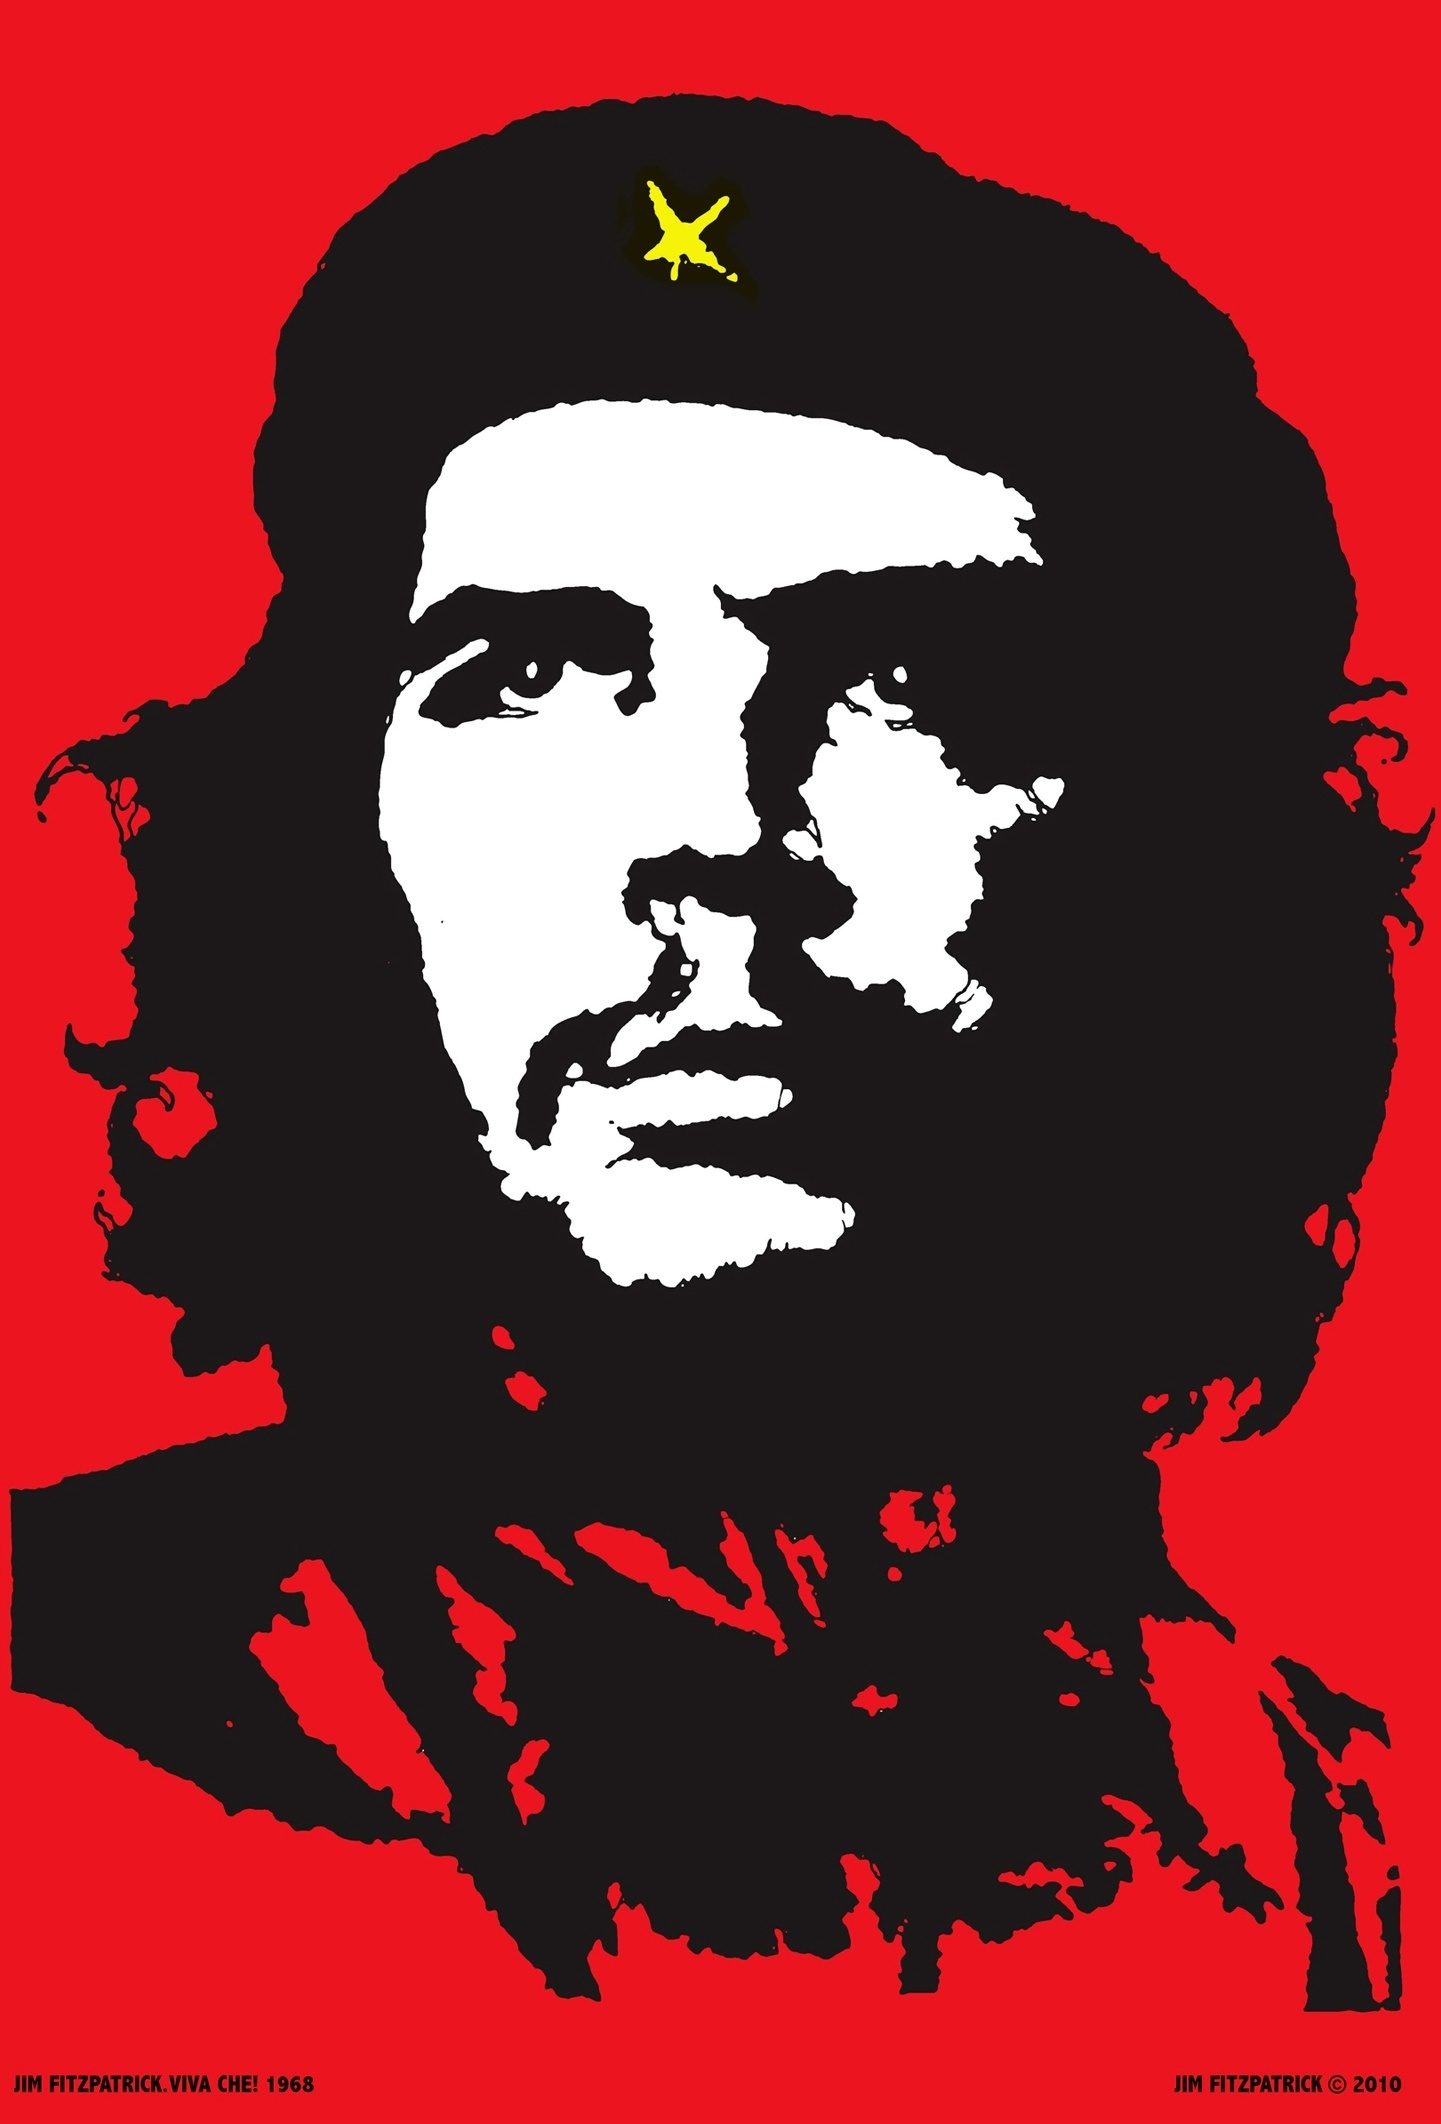 Good Topic For A Persuasive Essay Che Guevara Poster Free Print Download University Of Central Florida Essay also Format Of An Argumentative Essay Jim Fitzpatrick  Internationally Acclaimed Irish Artist Writing A Literary Essay